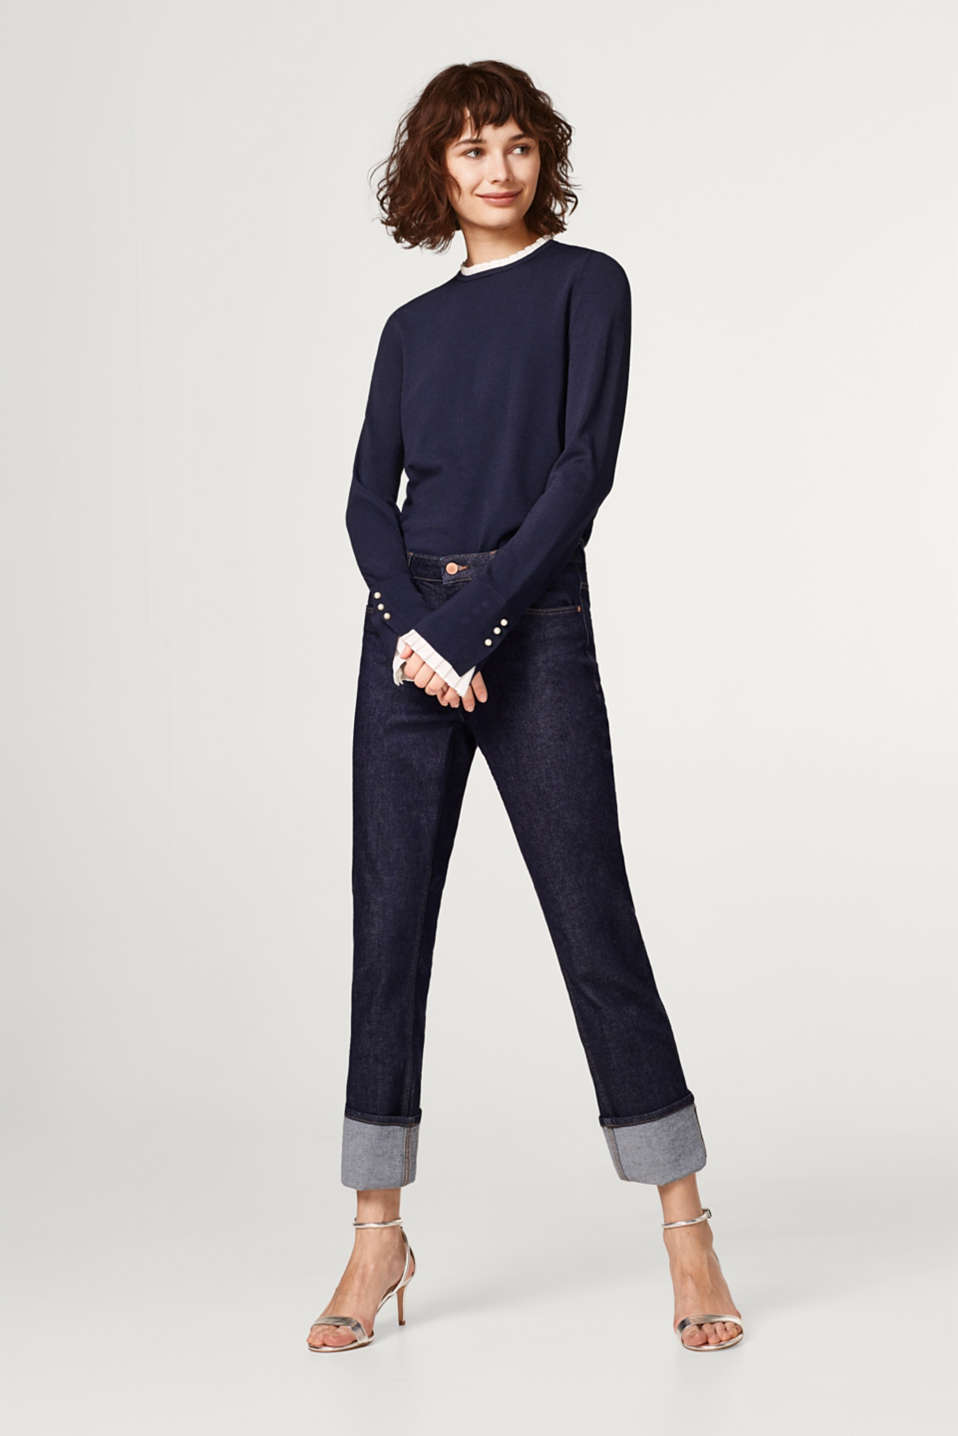 Soft jumper with pleated details